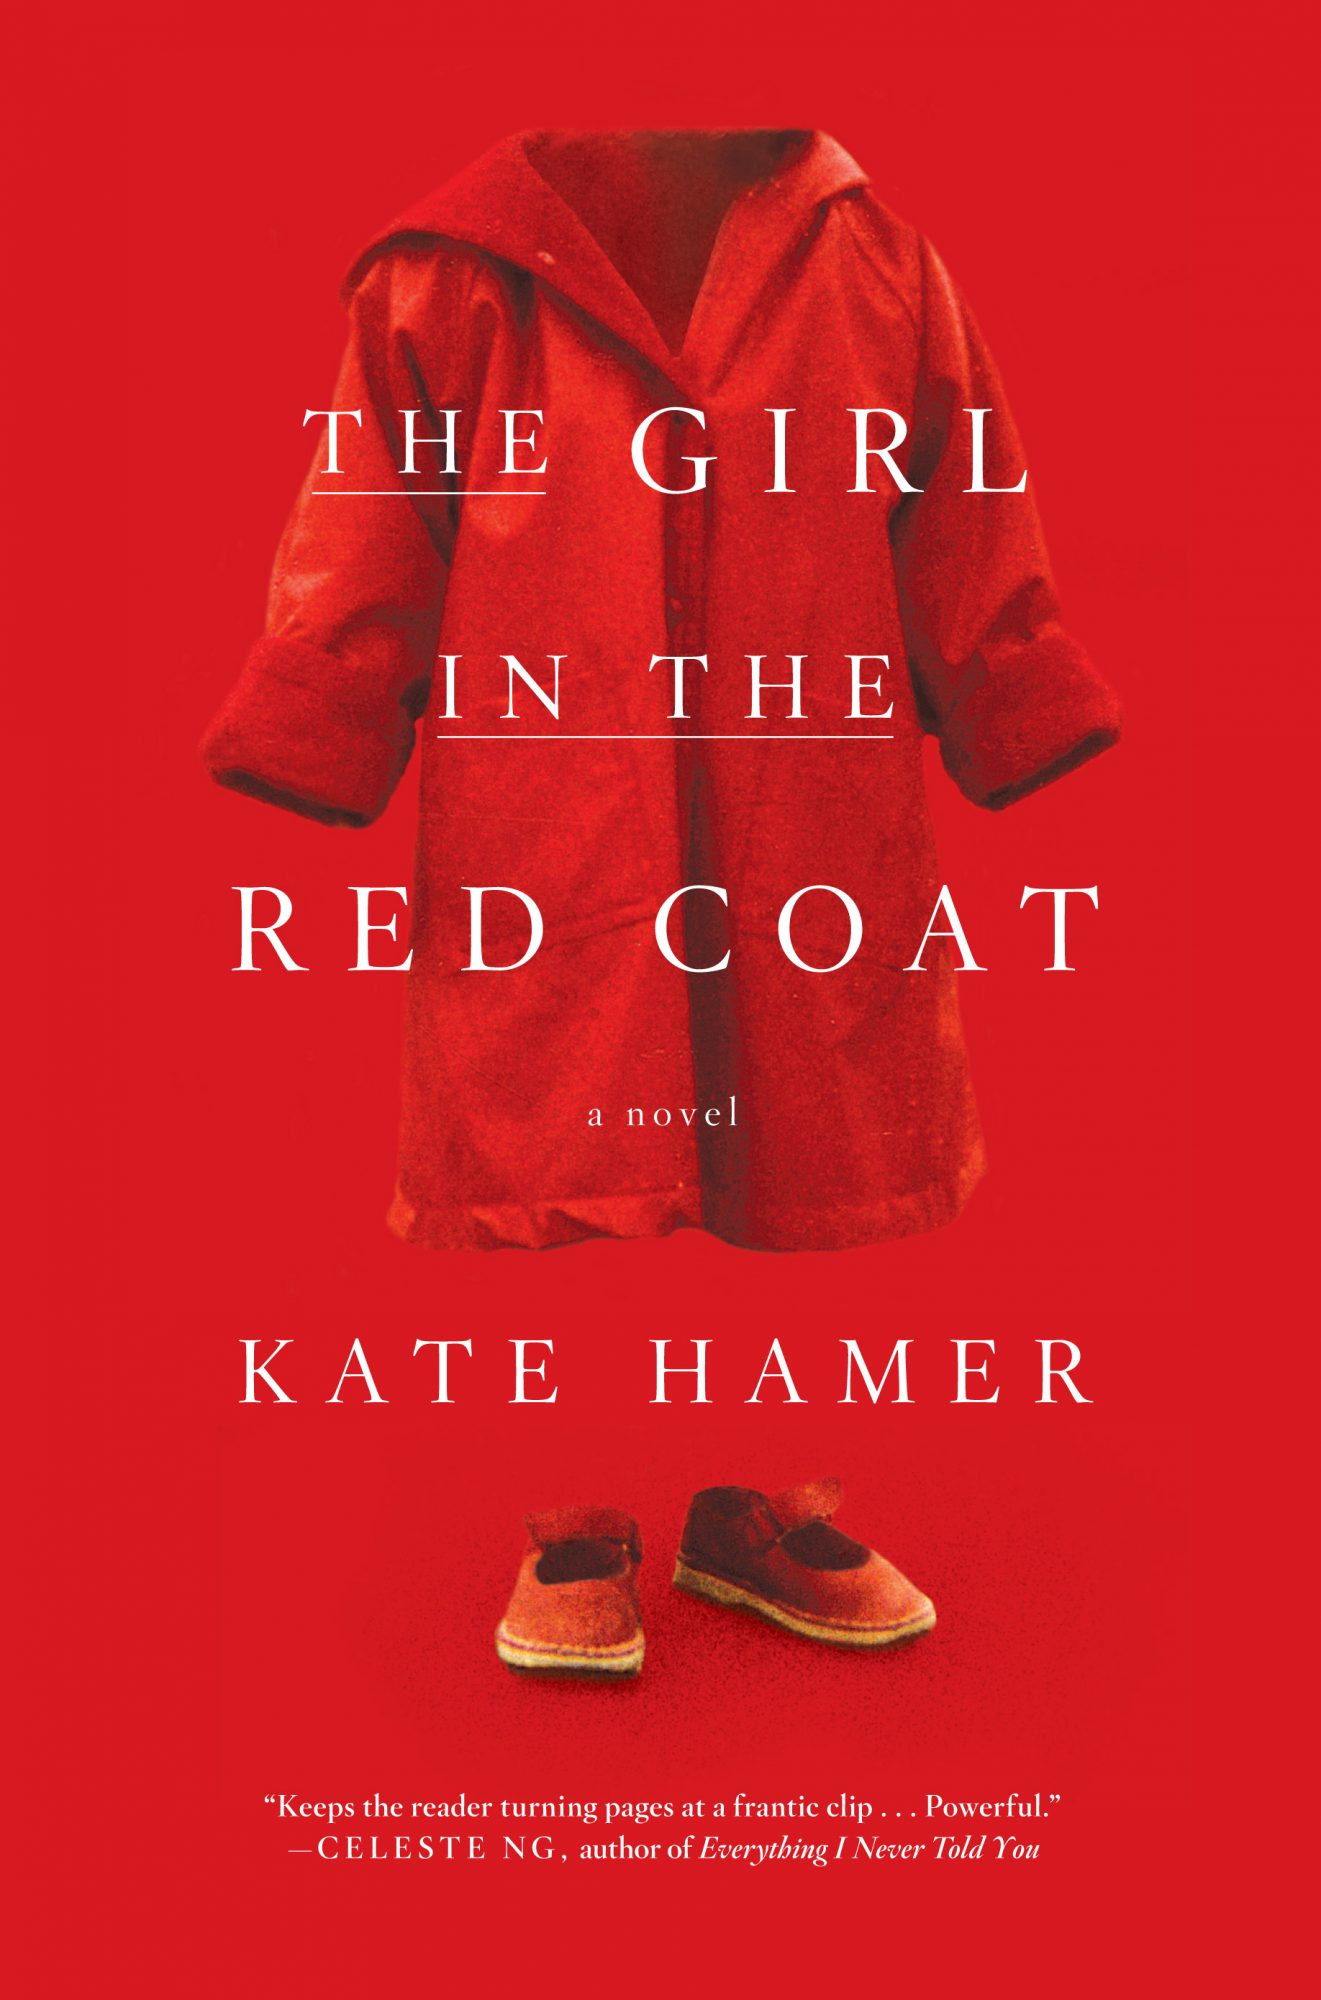 The Girl in the Red Coat (US)